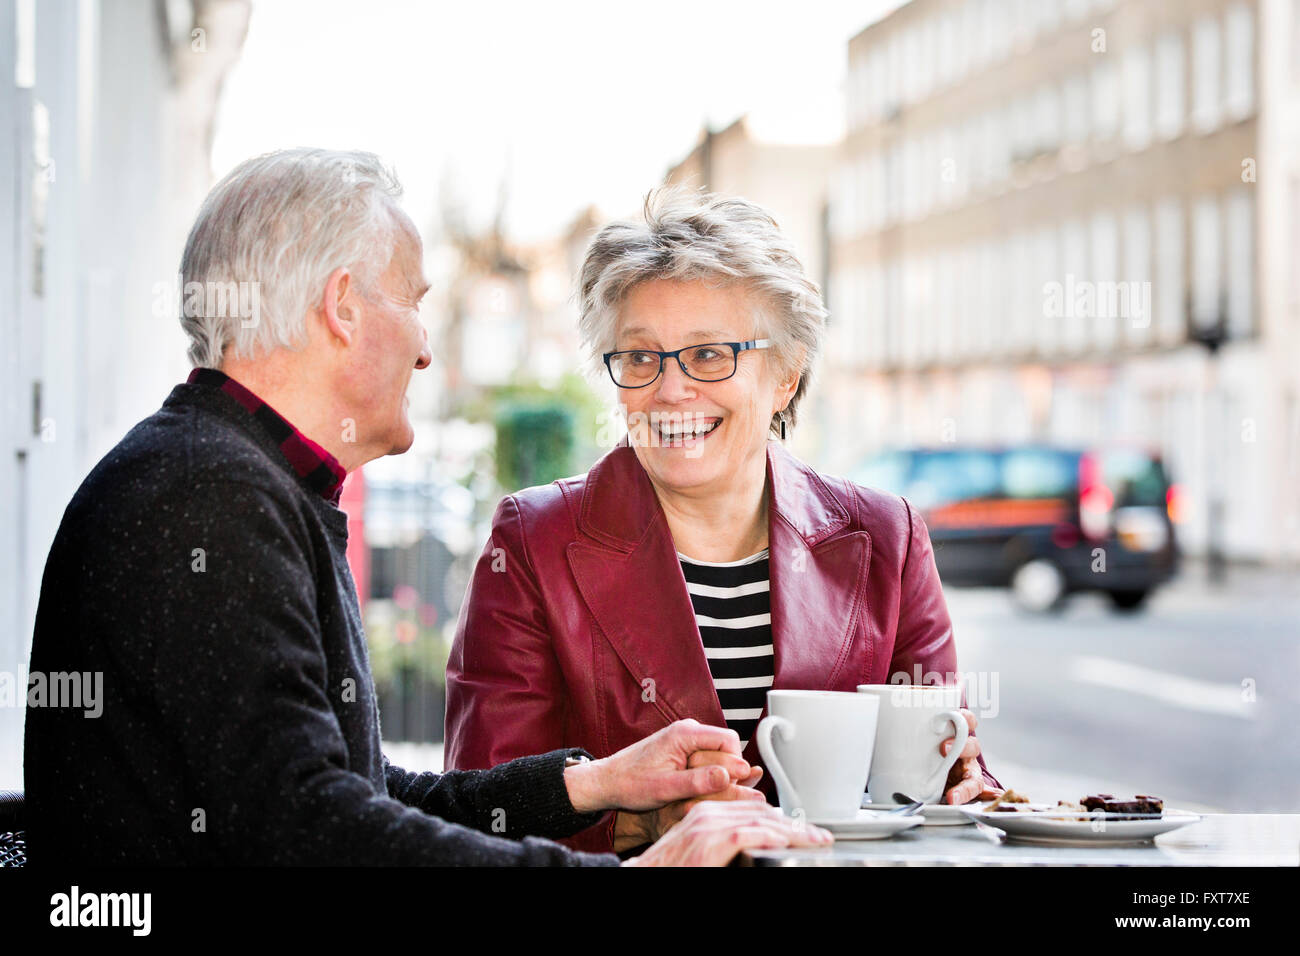 Romantic senior couple at sidewalk cafe holding hands - Stock Image